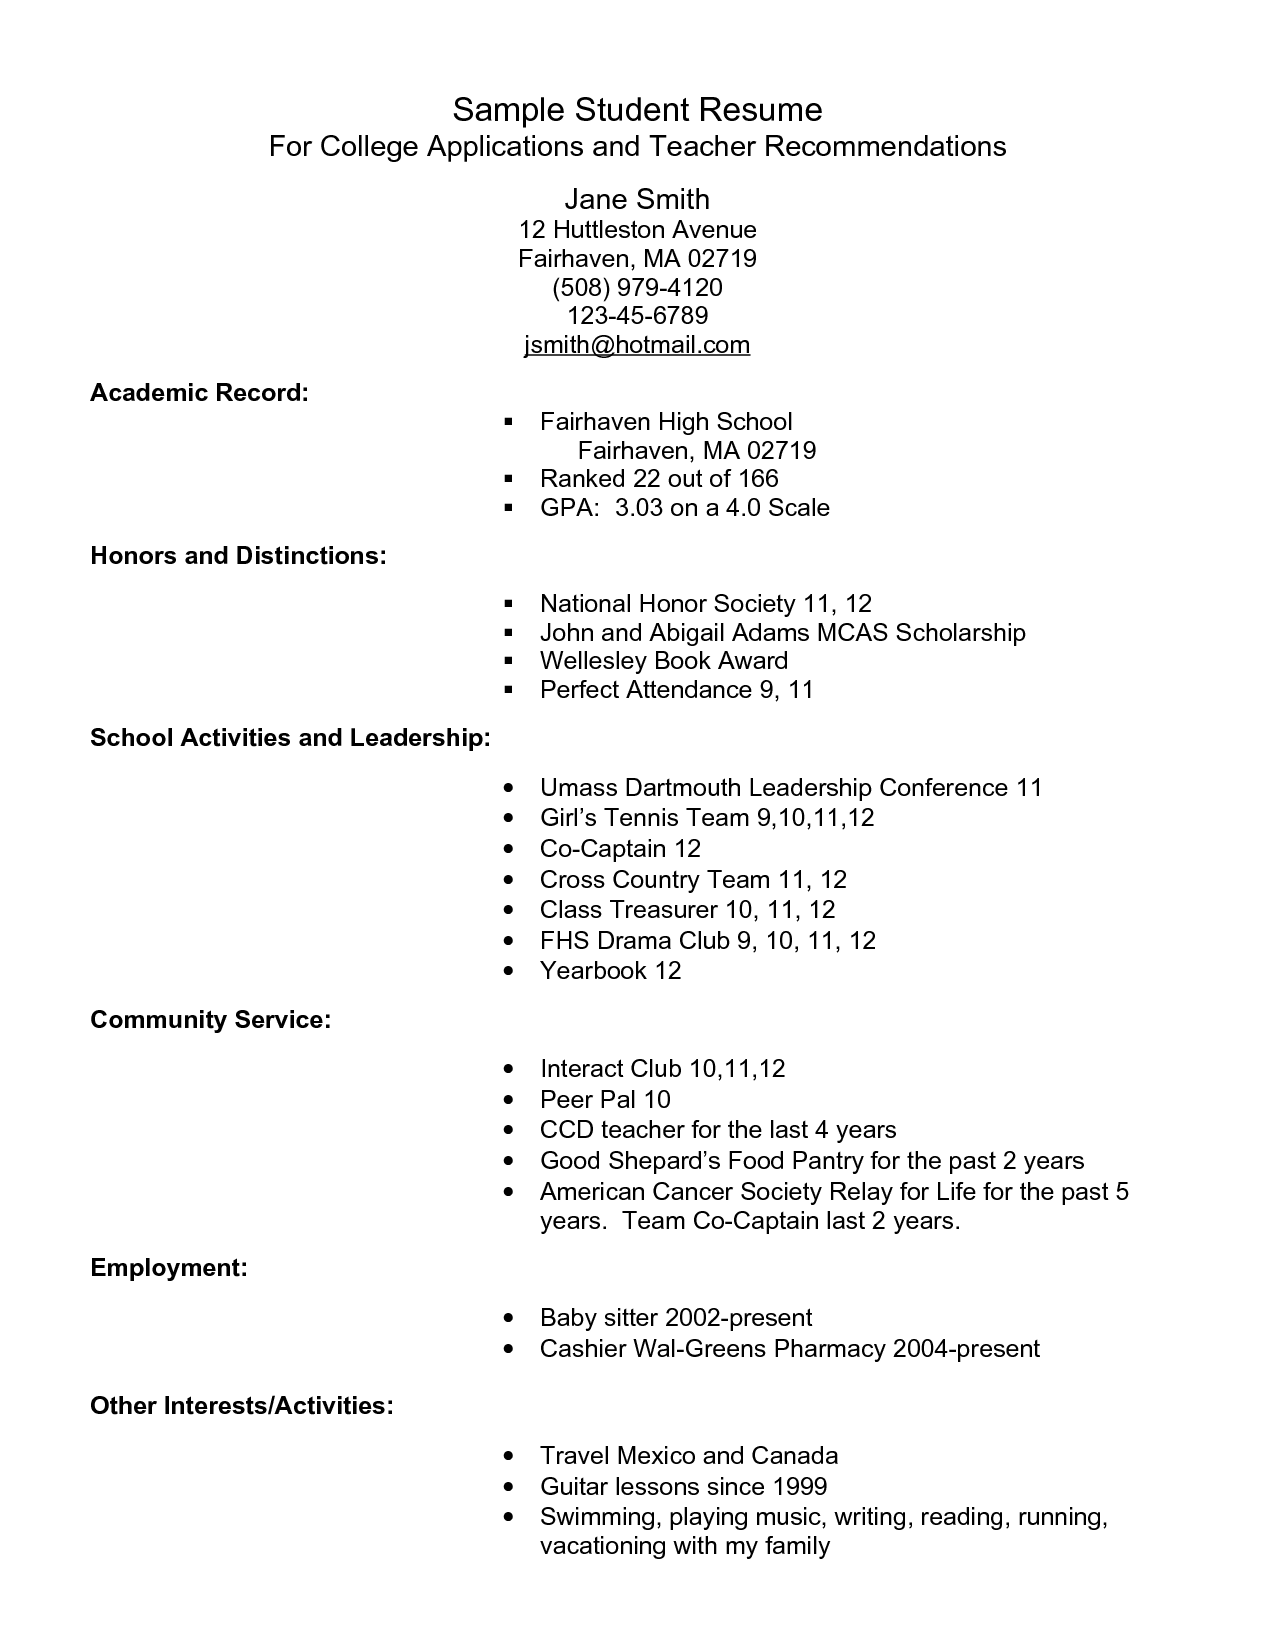 Resume Template High School Student Example Resume For High School Students For College Applications